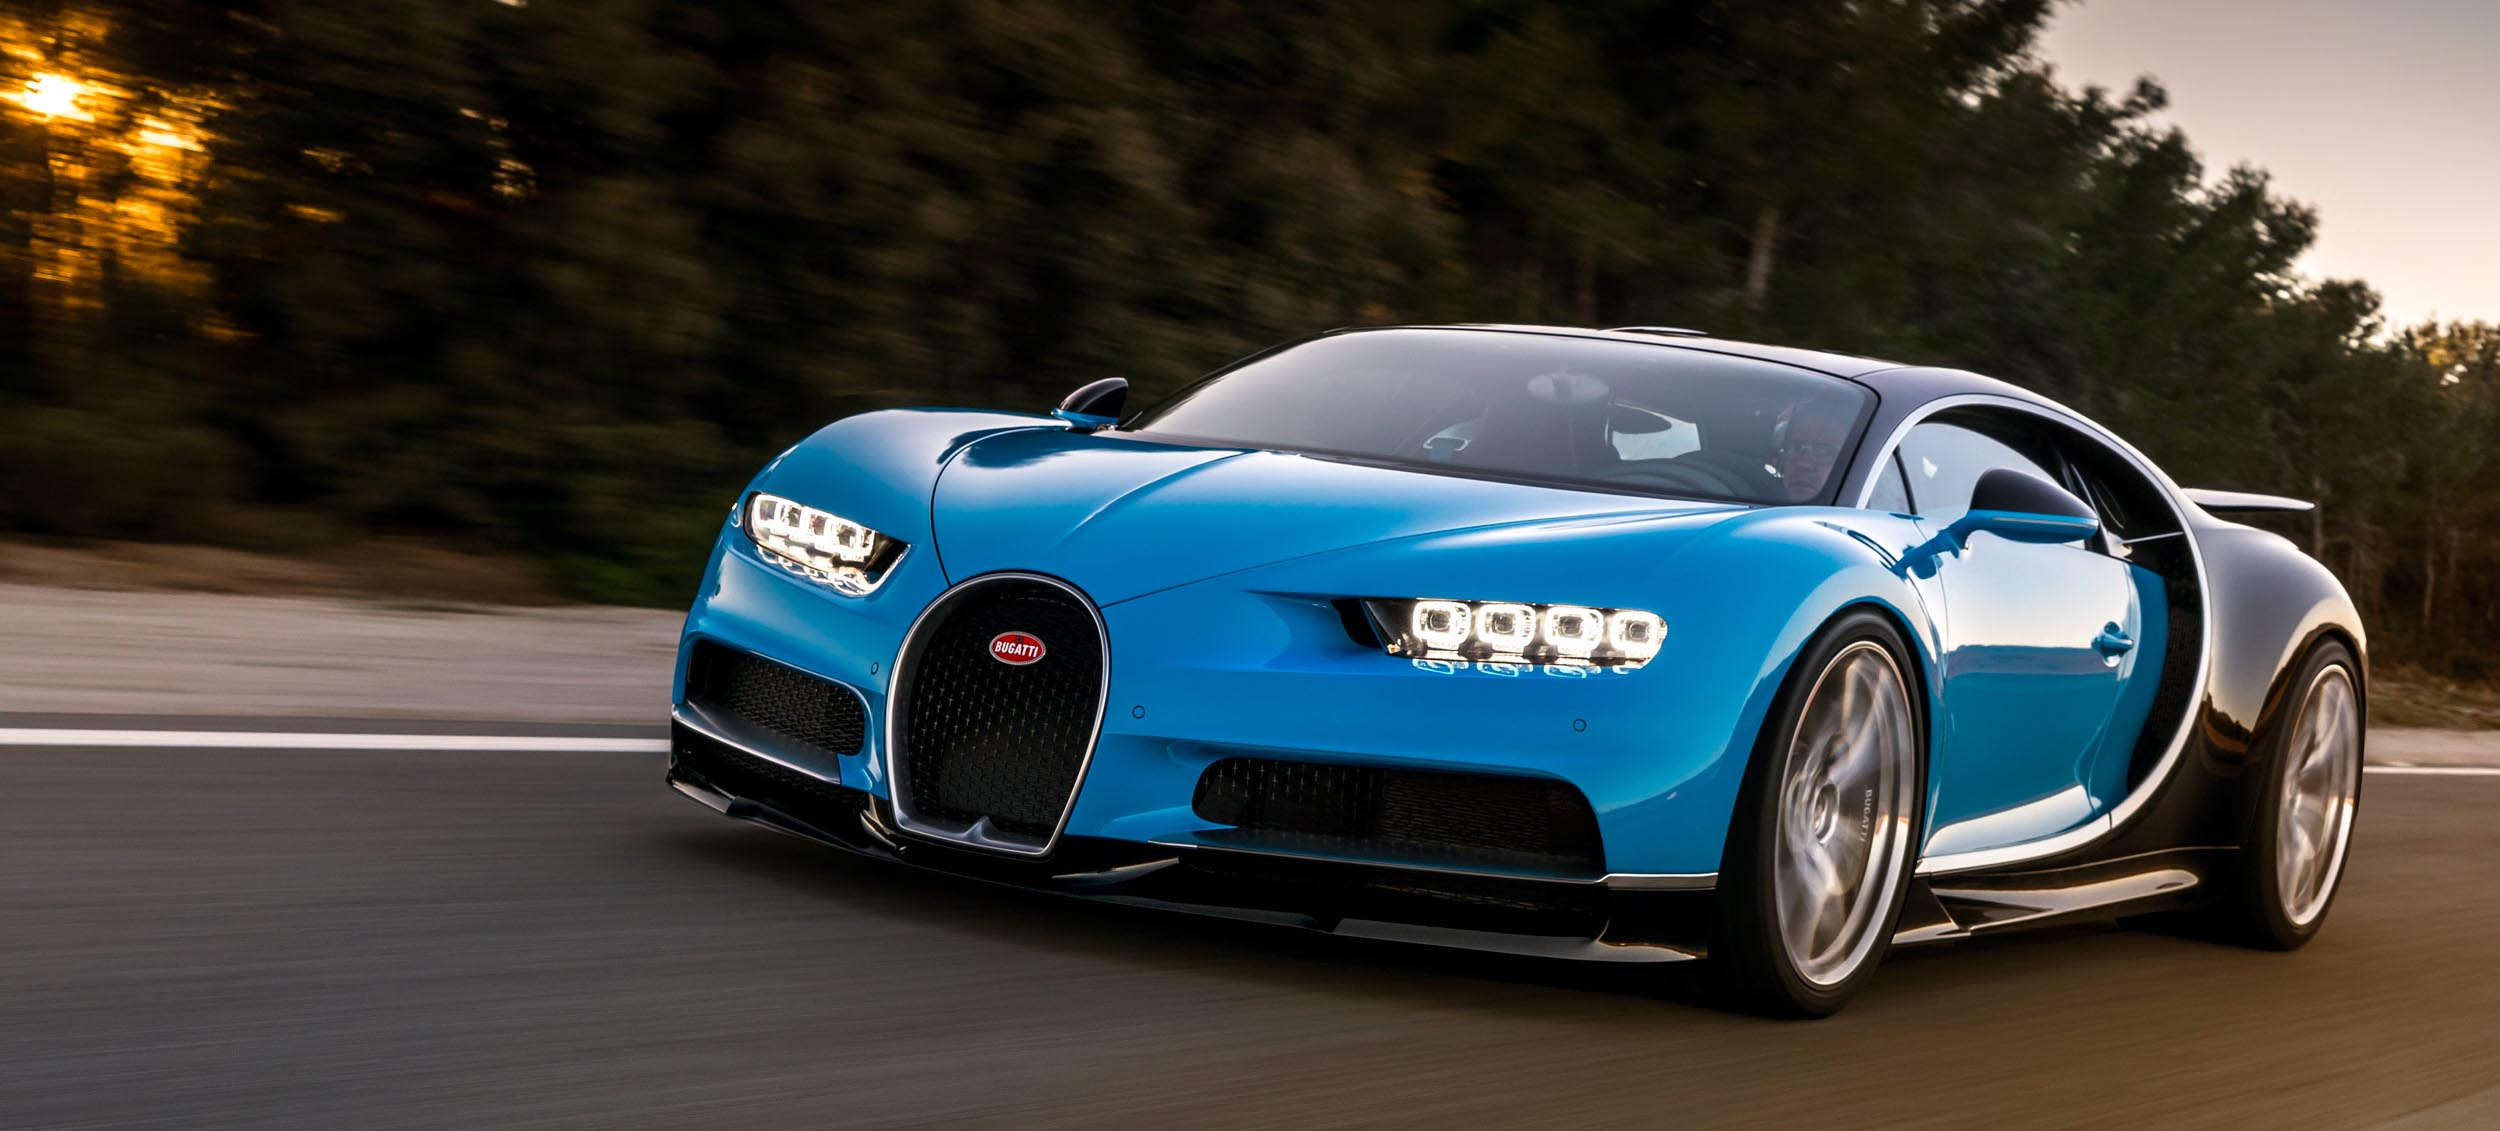 bugatti chiron is no doubt one of the most beautiful cars on the earth but also said to be among the most powerful ones the 8l sixteen cylinder engine